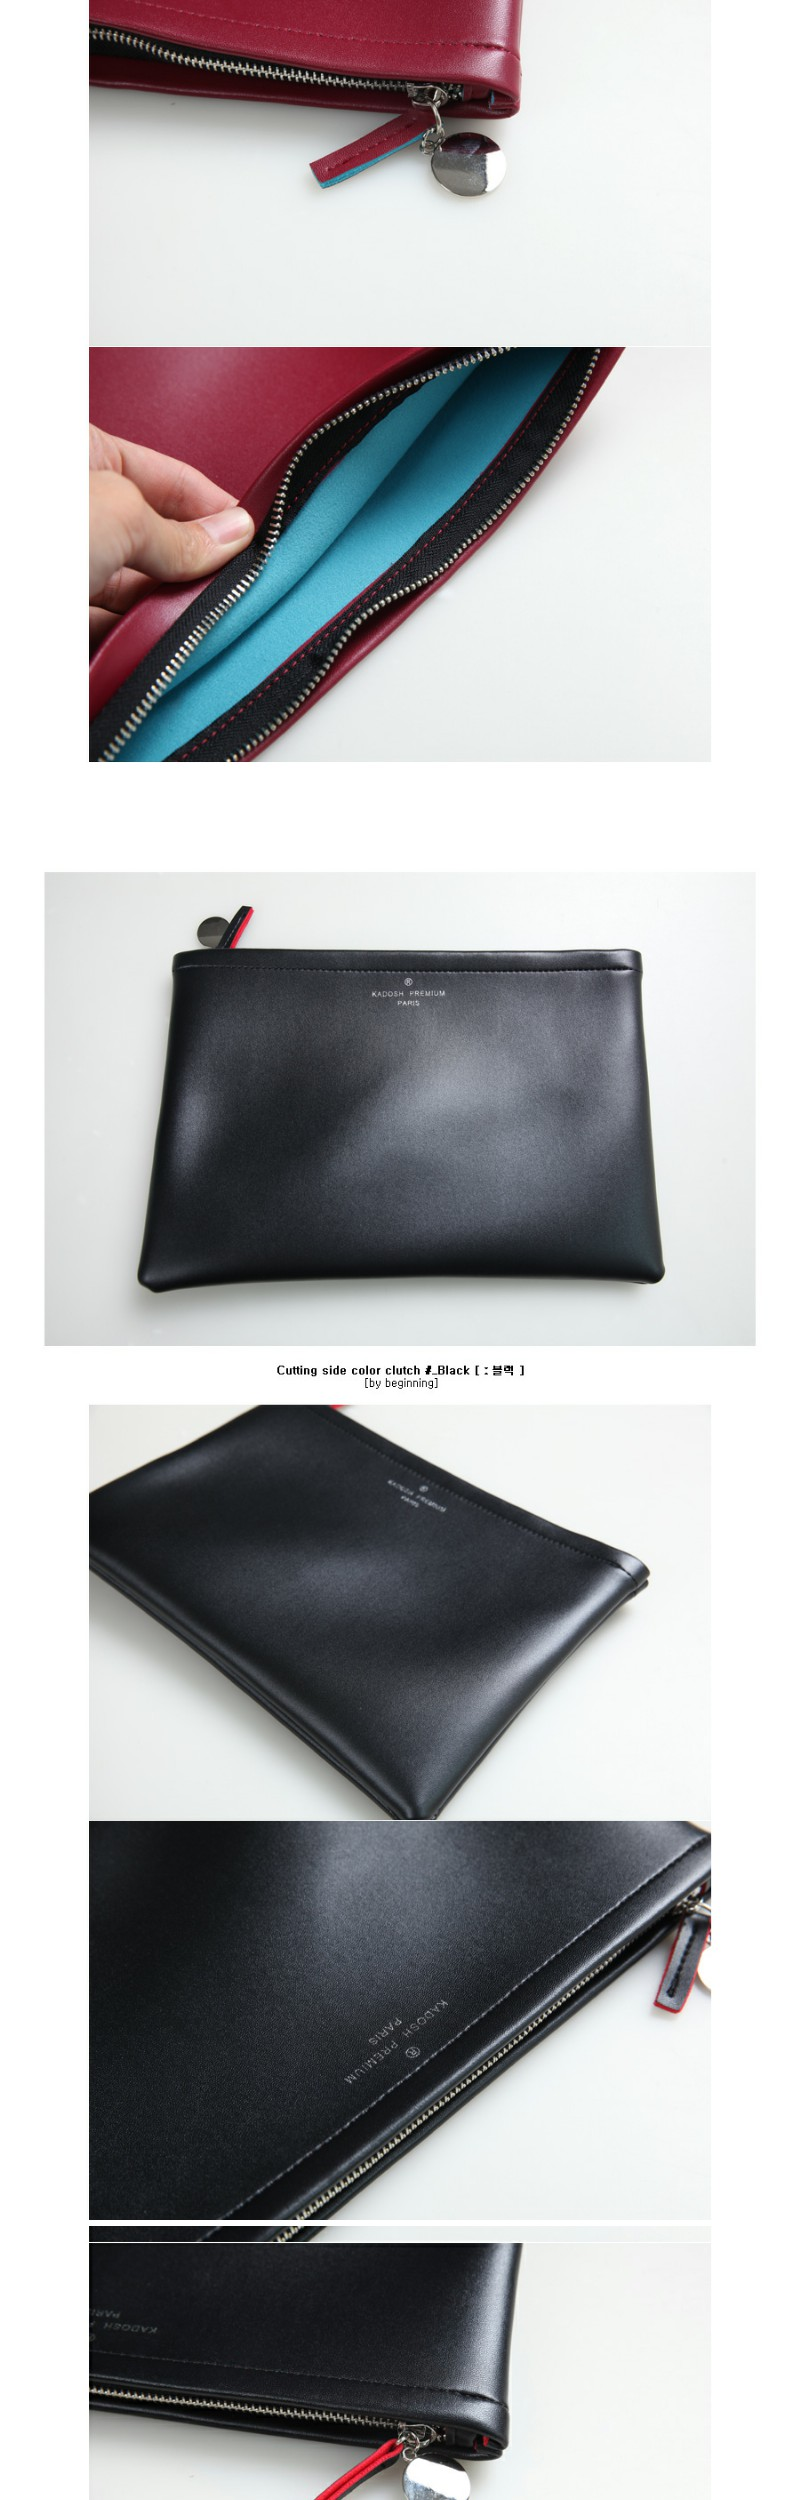 Cutting side color clutch (size : one)